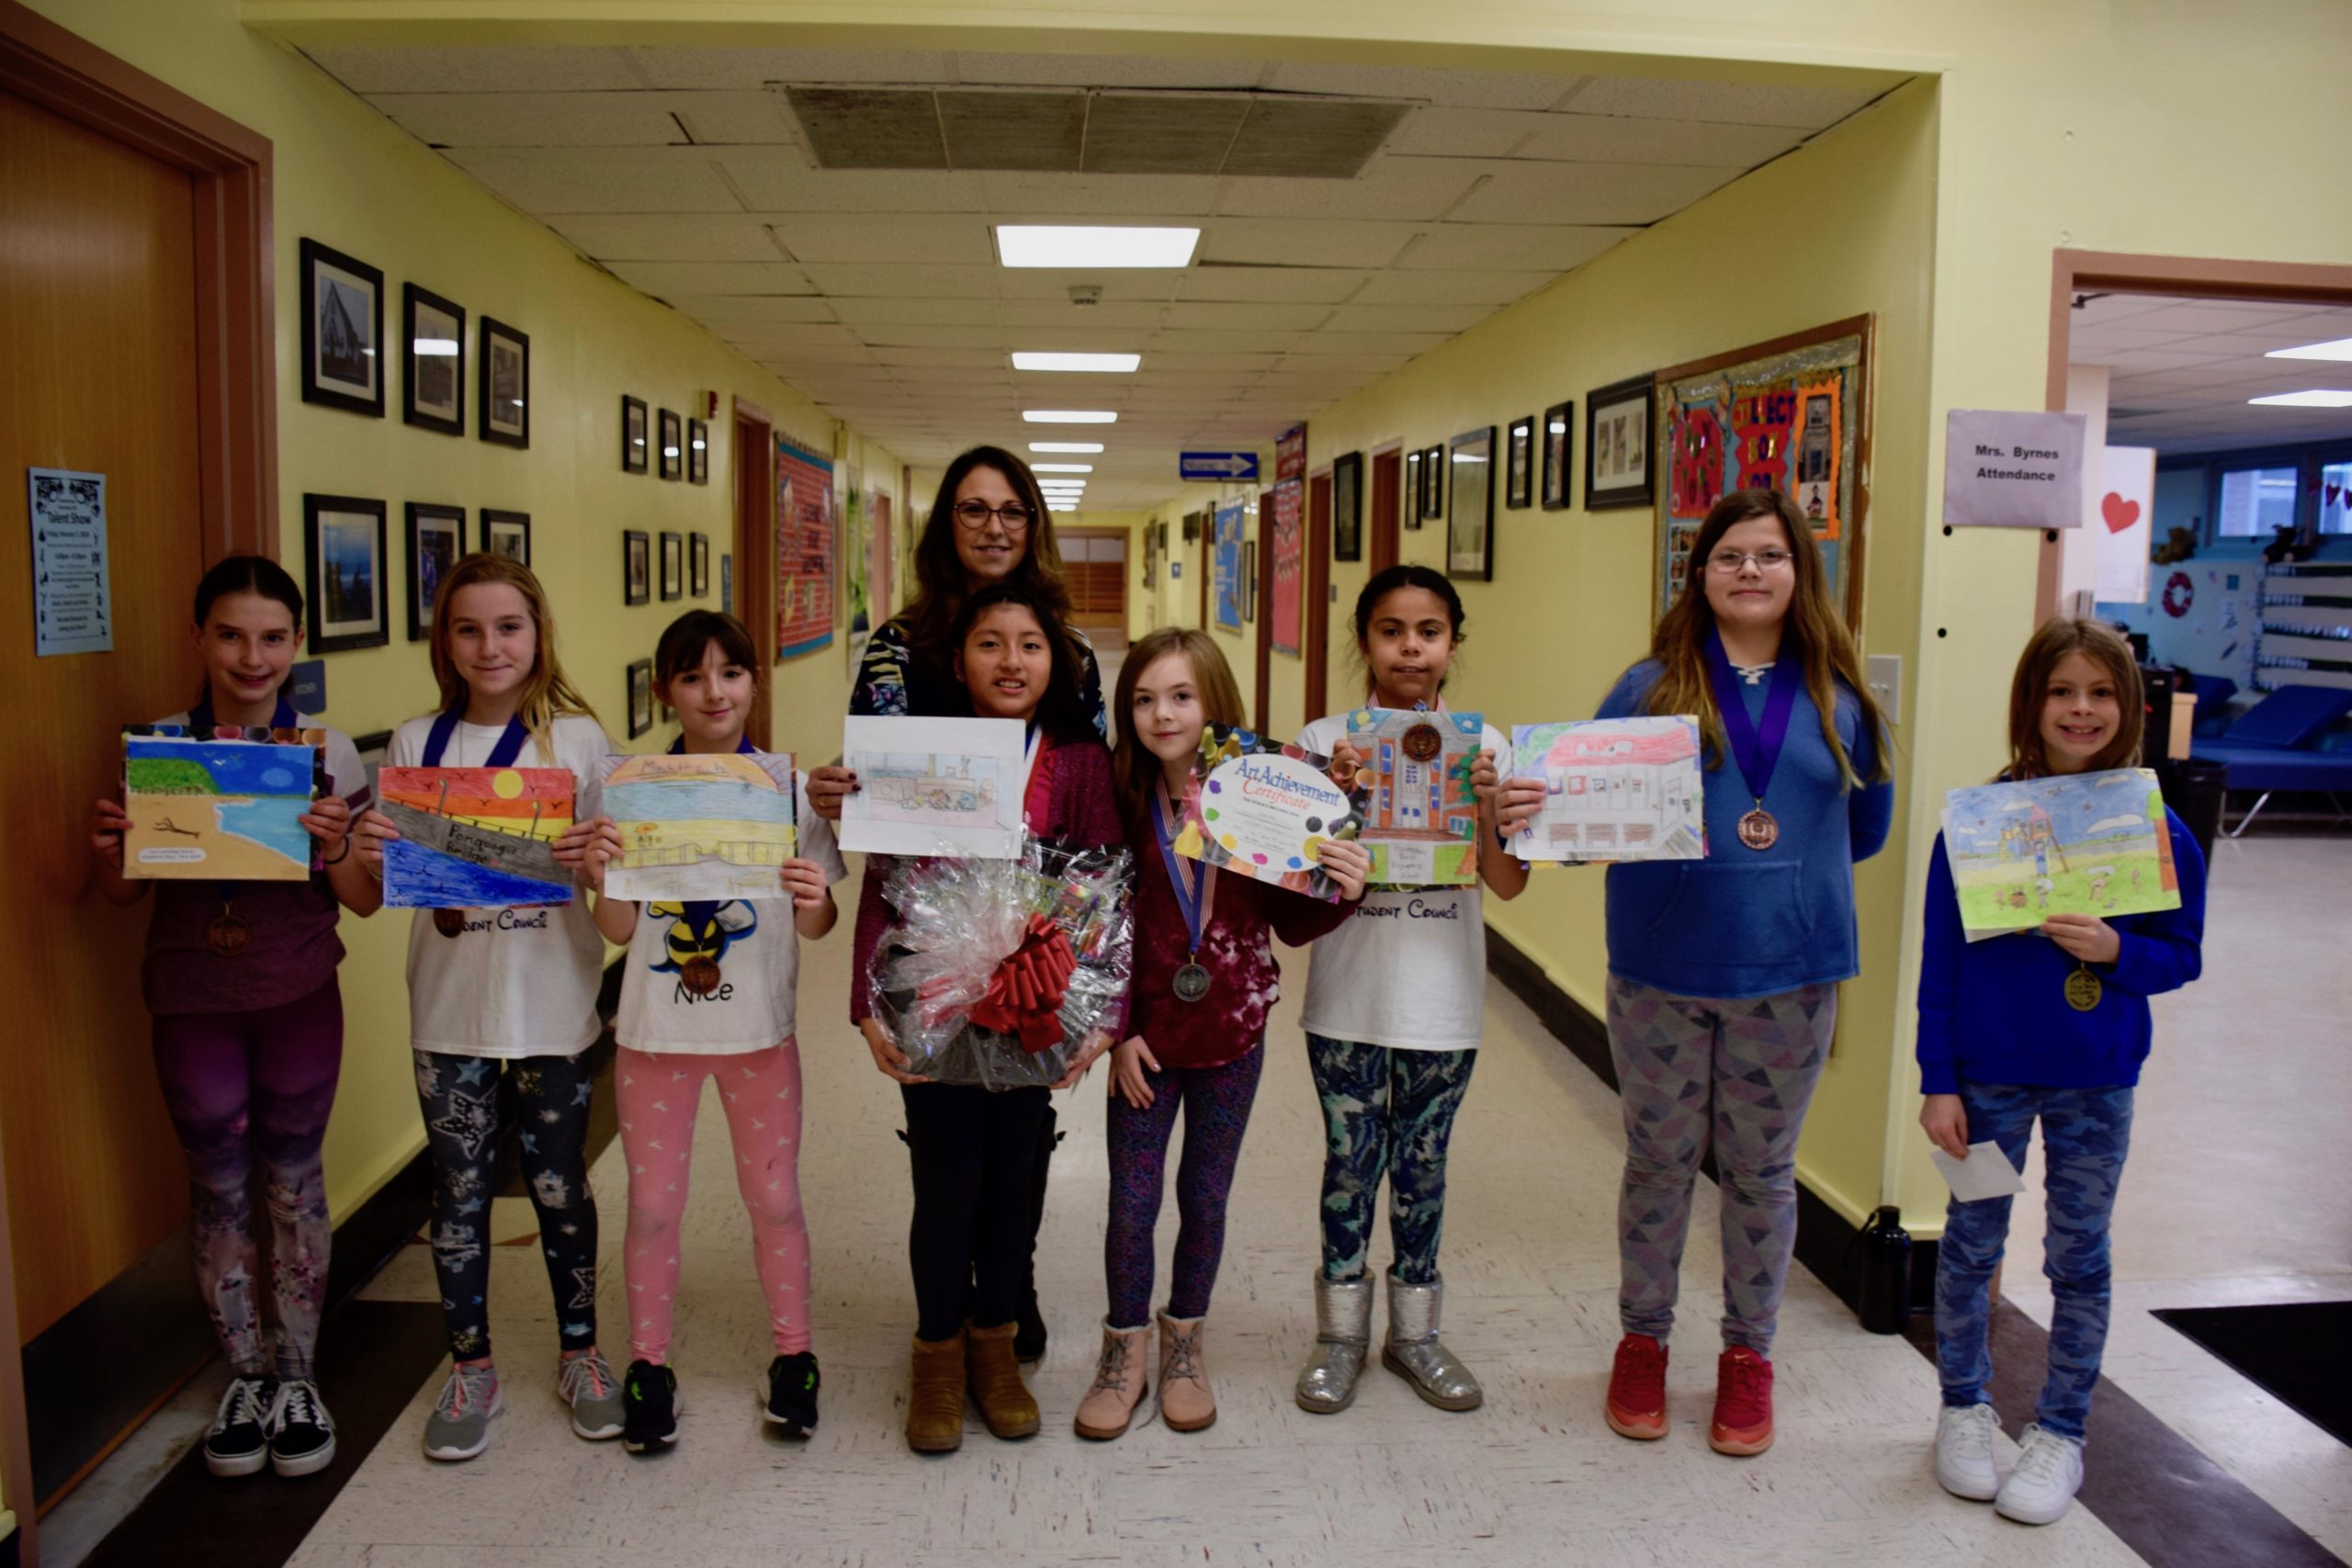 An anonymous donation of art supplies led to a schoolwide art contest at Hampton Bays Elementary School.